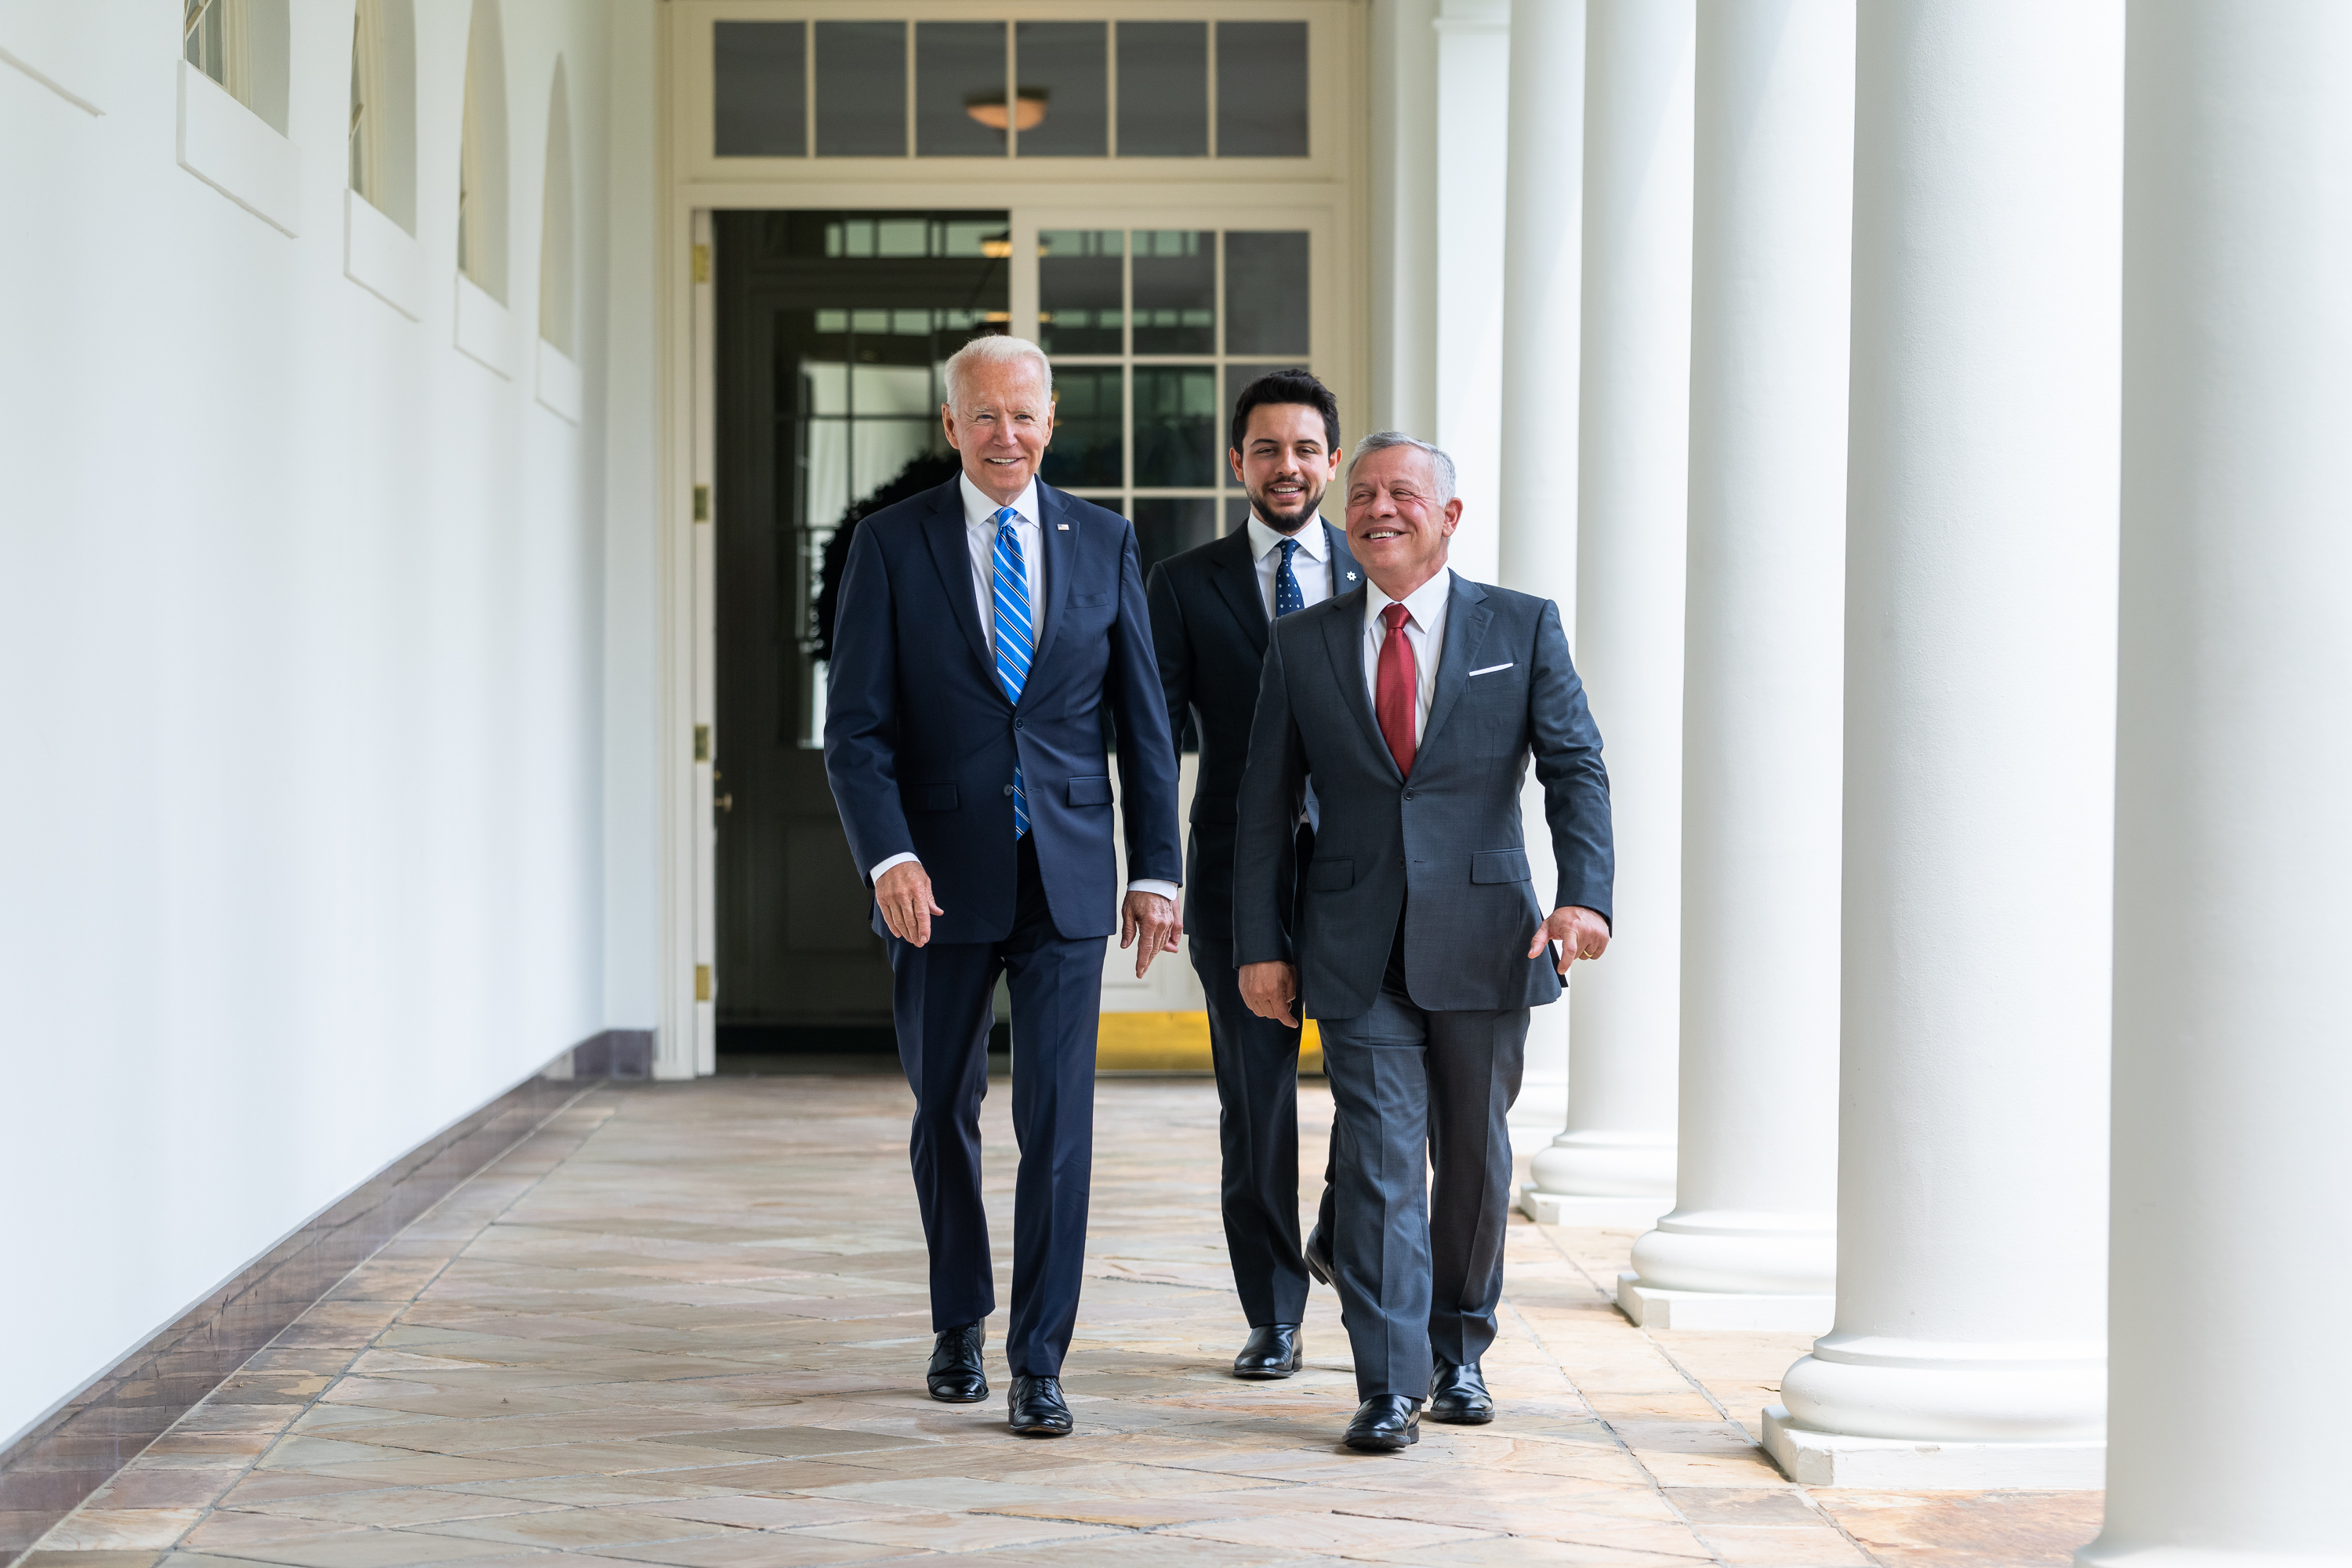 President Joe Biden, King Abdullah II and Crown Prince Al Hussein Bin Abdullah II of Jordan walk along the Colonnade of the White House on Monday, July 19, 2021, to the Oval Office. (Official White House Photo by Adam Schultz via Sipa USA)Please note: Fees charged by the agency are for the agency's services only, and do not, nor are they intended to, convey to the user any ownership of Copyright or License in the material. The agency does not claim any ownership including but not limited to Copyright or License in the attached material. By publishing this material you expressly agree to indemnify and to hold the agency and its directors, shareholders and employees harmless from any loss, claims, damages, demands, expenses (including legal fees), or any causes of action or allegation against the agency arising out of or connected in any way with publication of the material.No Use Germany.